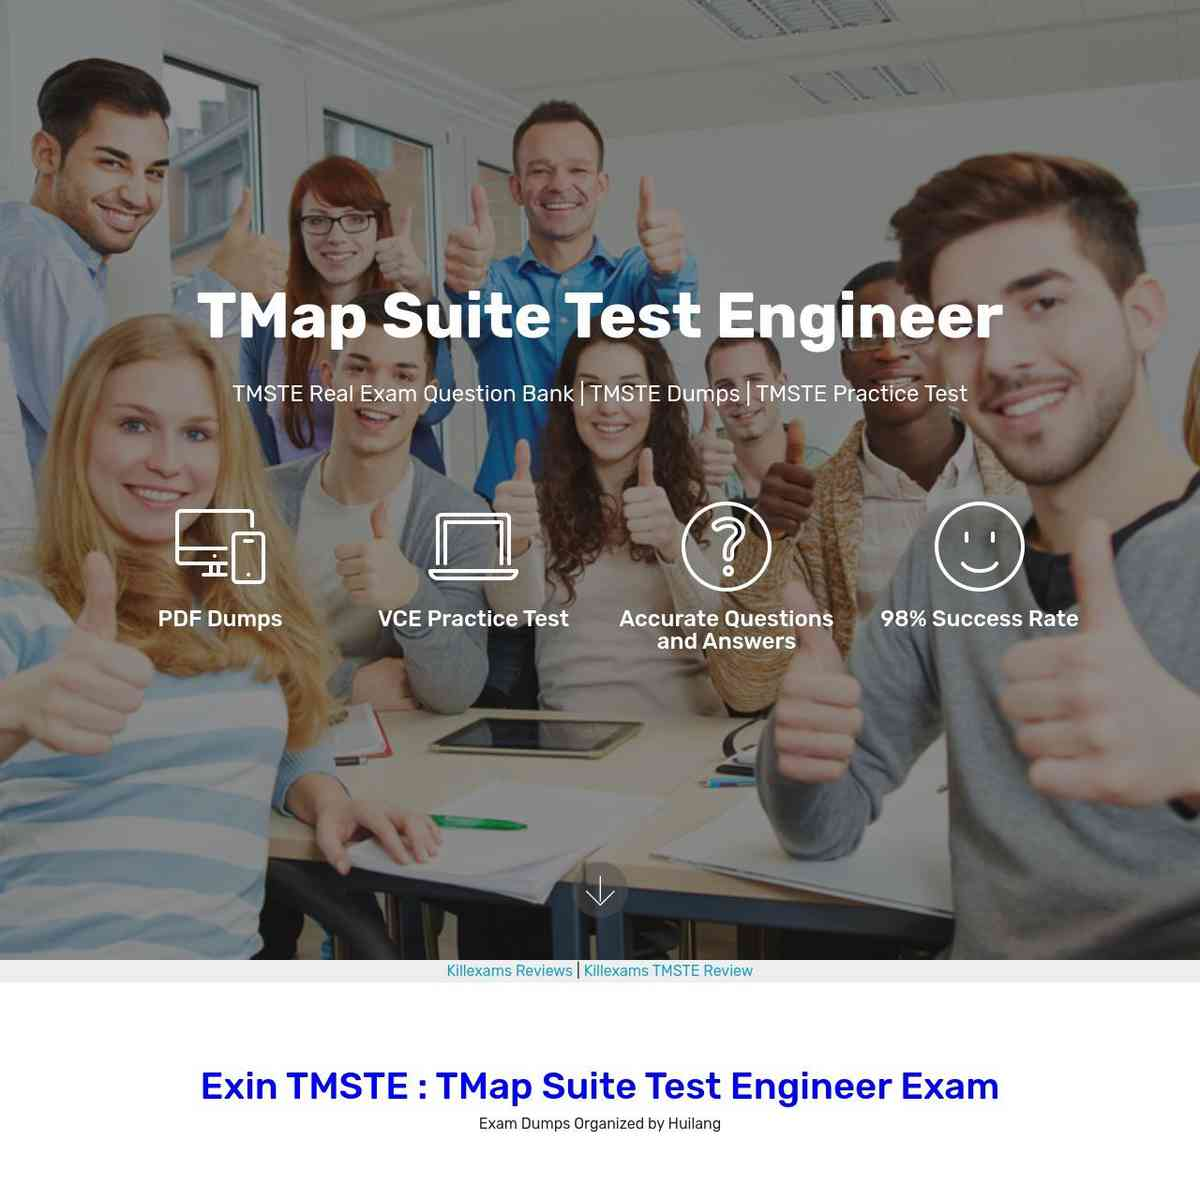 Do not waste time, Download free TMSTE Study Guide and Practice Test